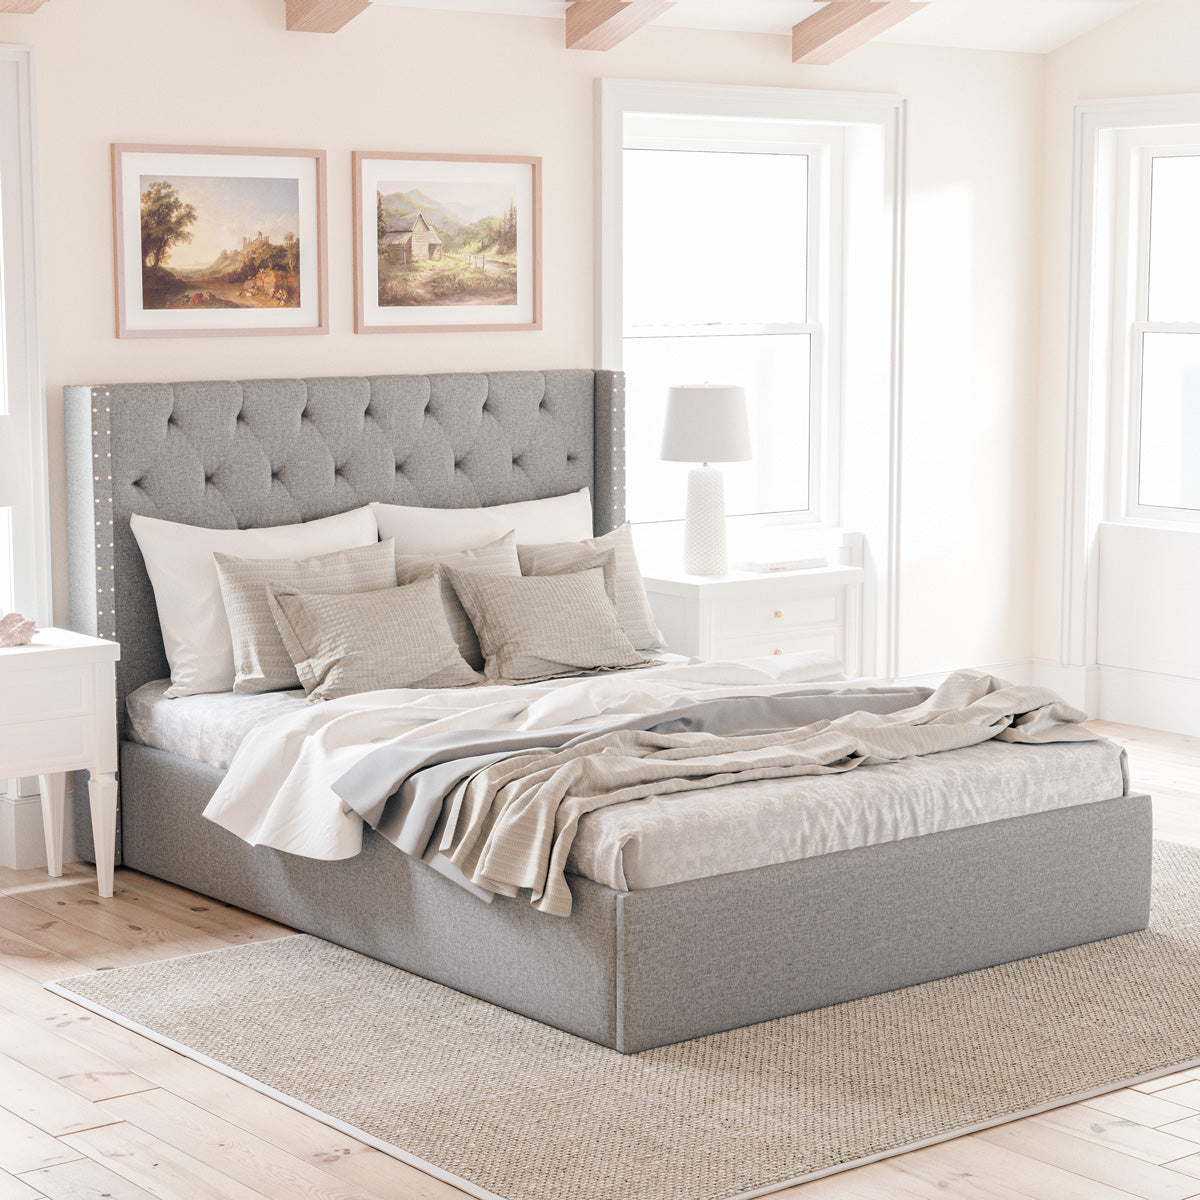 Leonora Gas Lift Storage Wing Bed Frame with Studs (Grey Fabric)